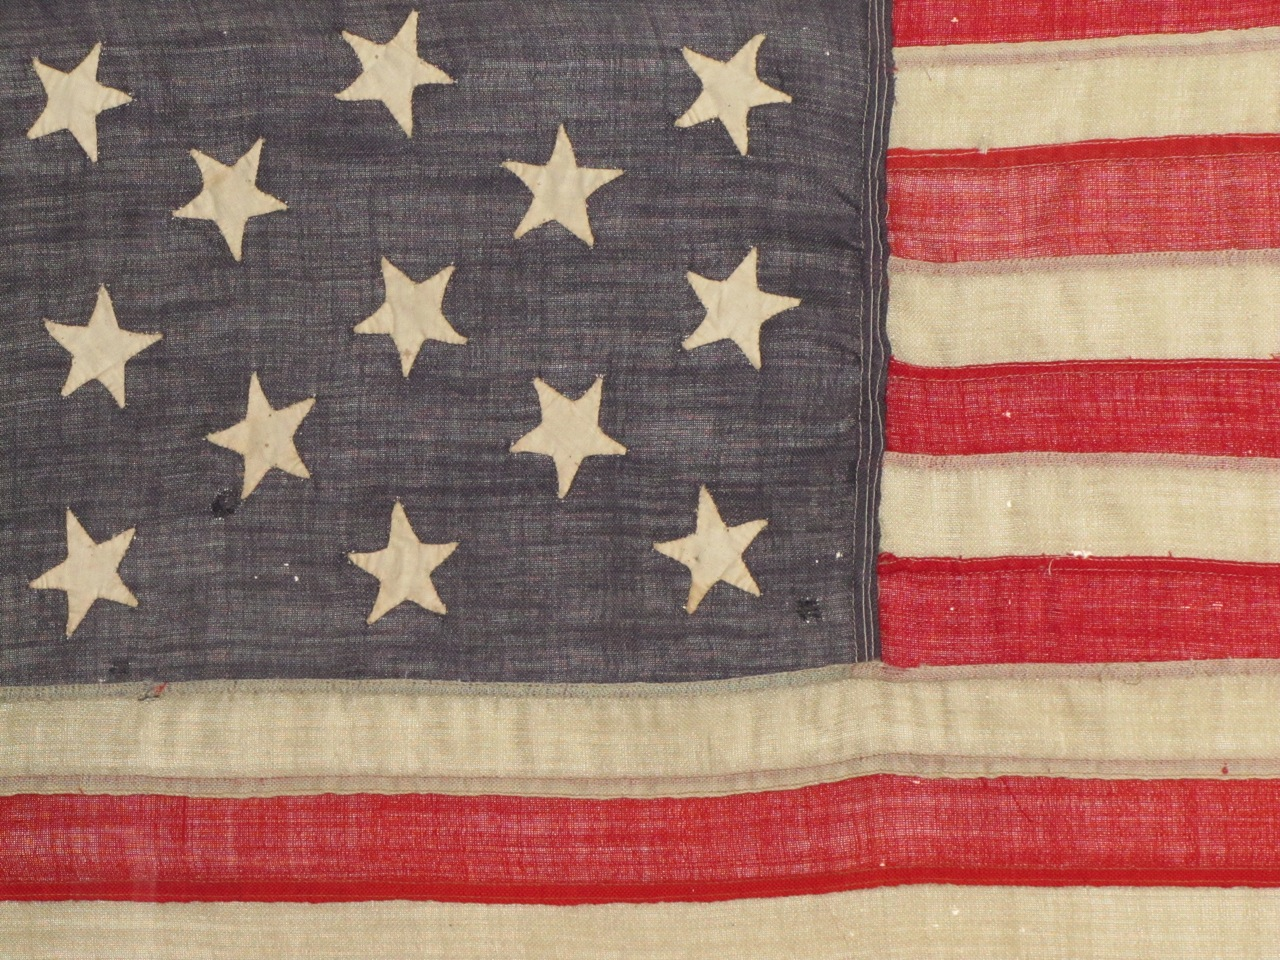 679cb1de342 ... Rare 13 Star Flag Civil War Era Hand Sewn Stars   SKU 9375   SOLD. 🔍.  ANTIQUE FLAG IMAGE